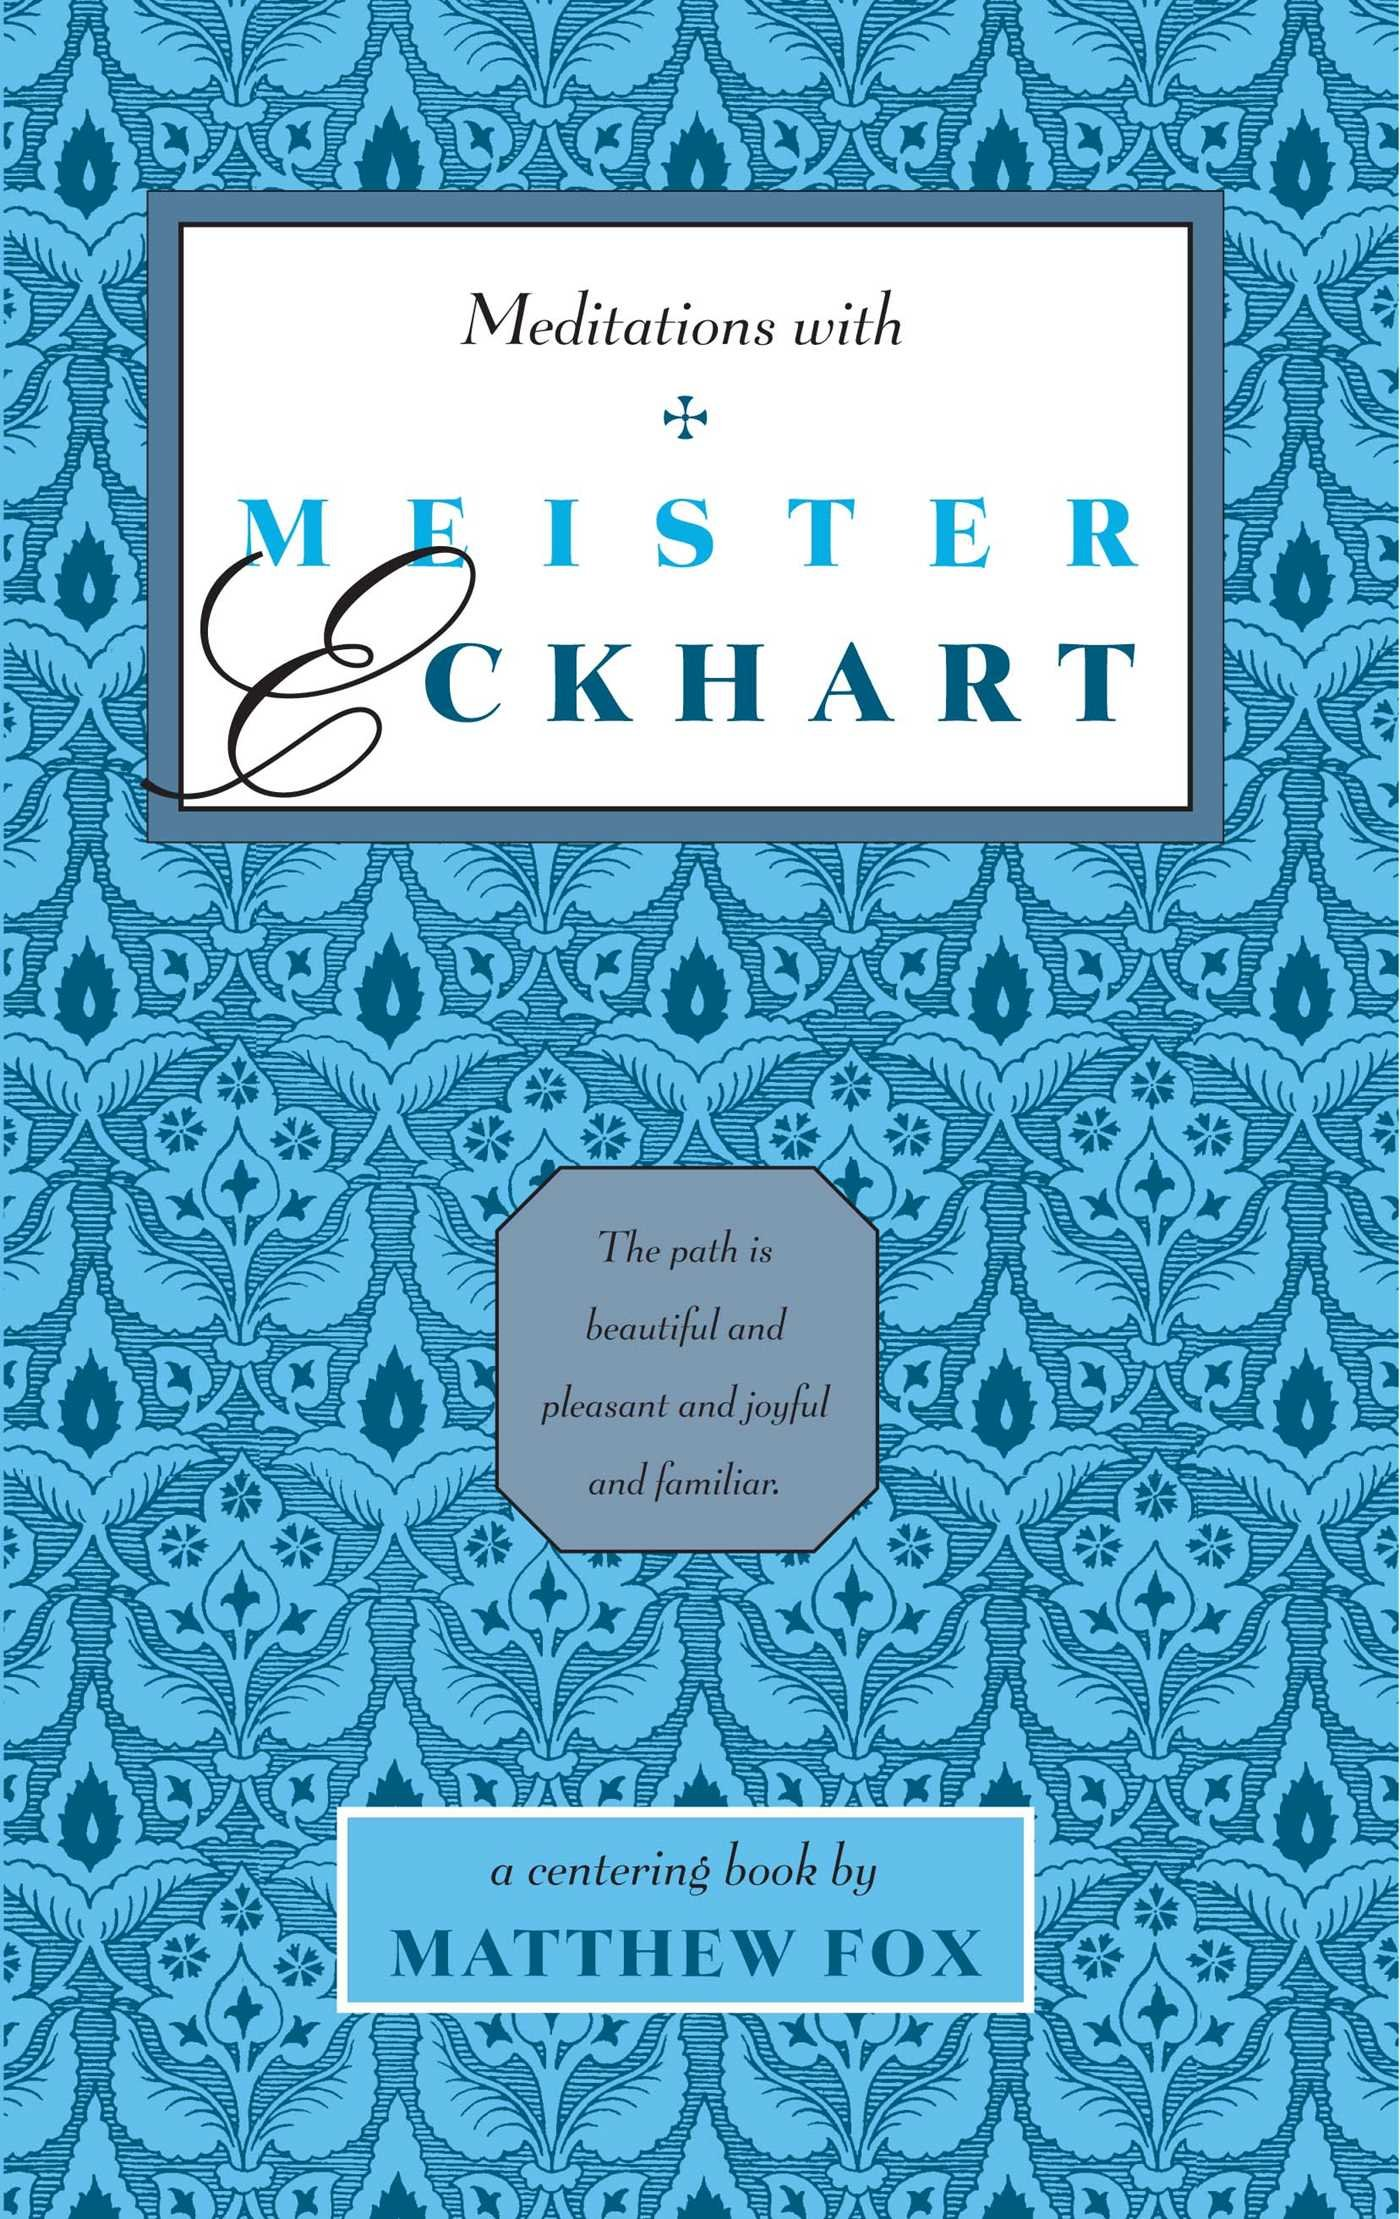 Meditations with Meister Eckhart - Matthew Fox